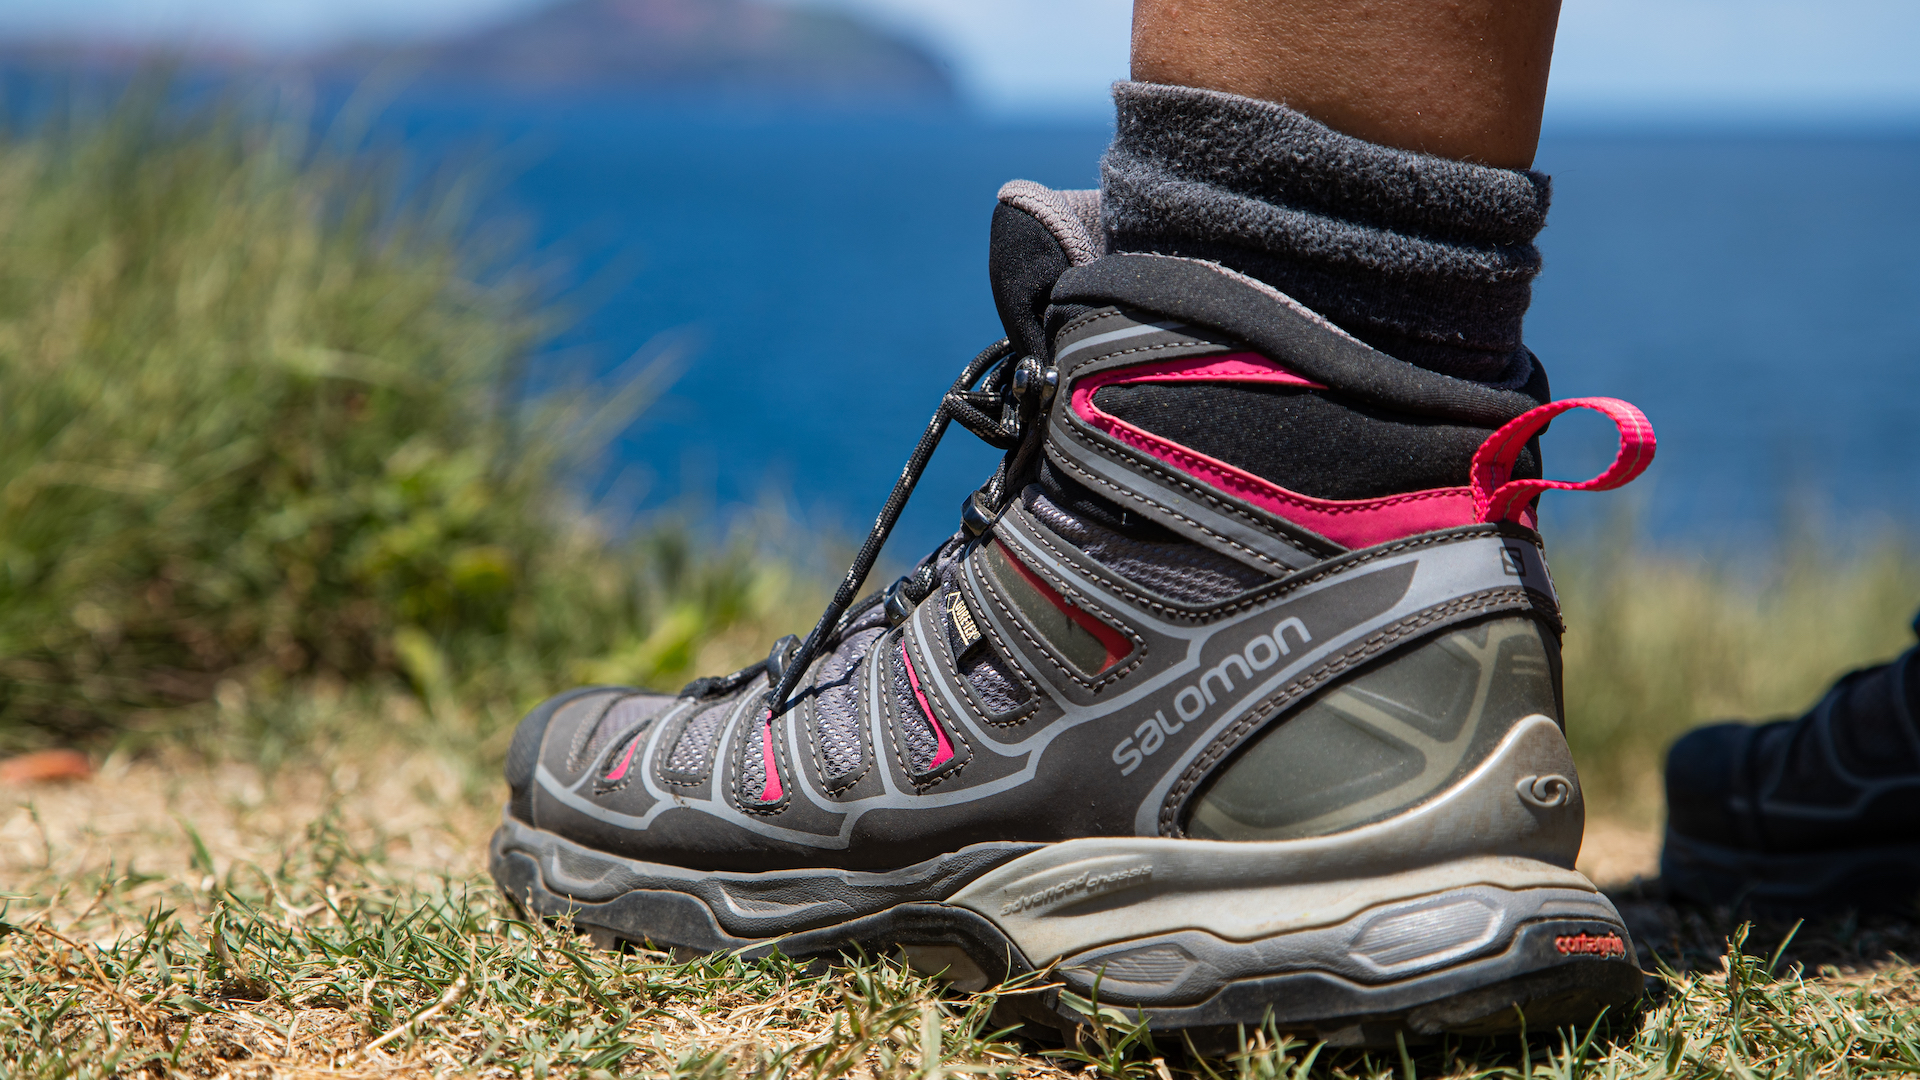 Close-up of grey and pink Salomon hiking shoe on grass.